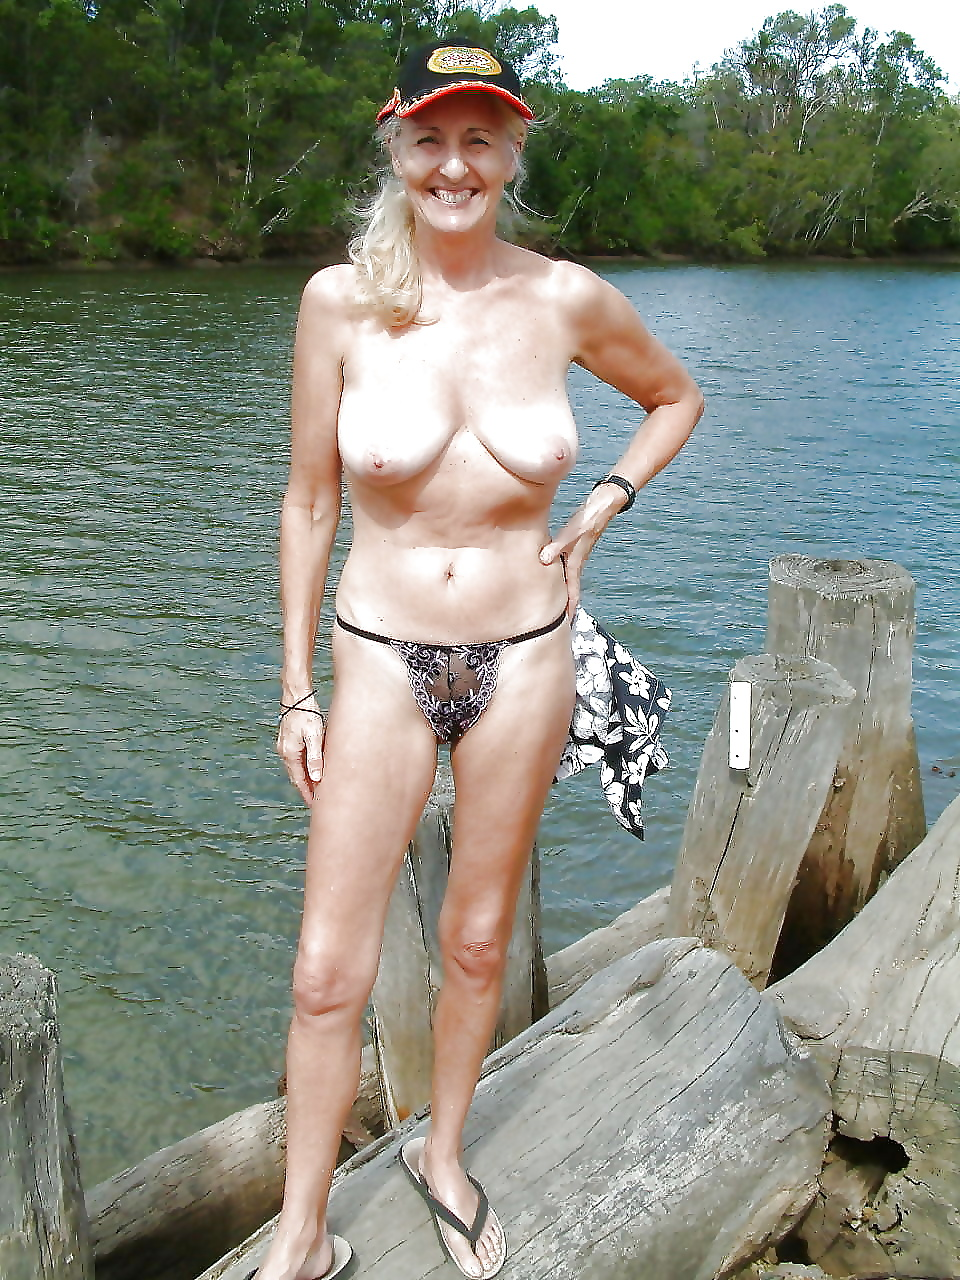 Gilf Time - 47 Pics - Xhamstercom-9748